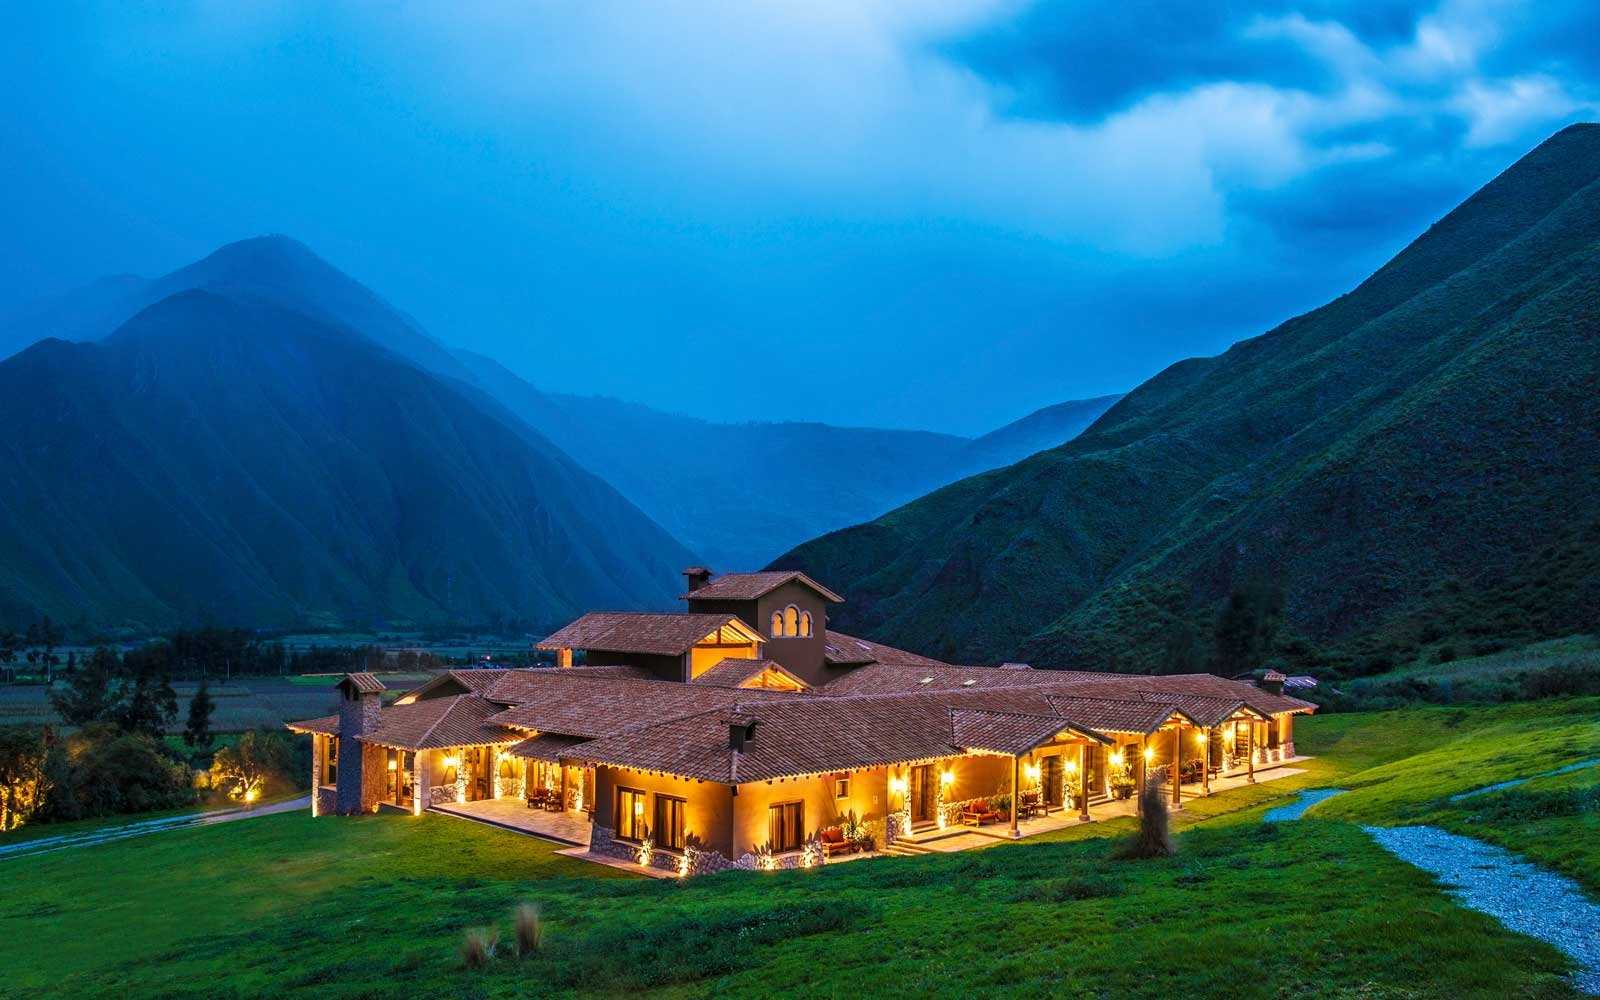 Night view of the Inkaterra Hacienda Urubamba resort